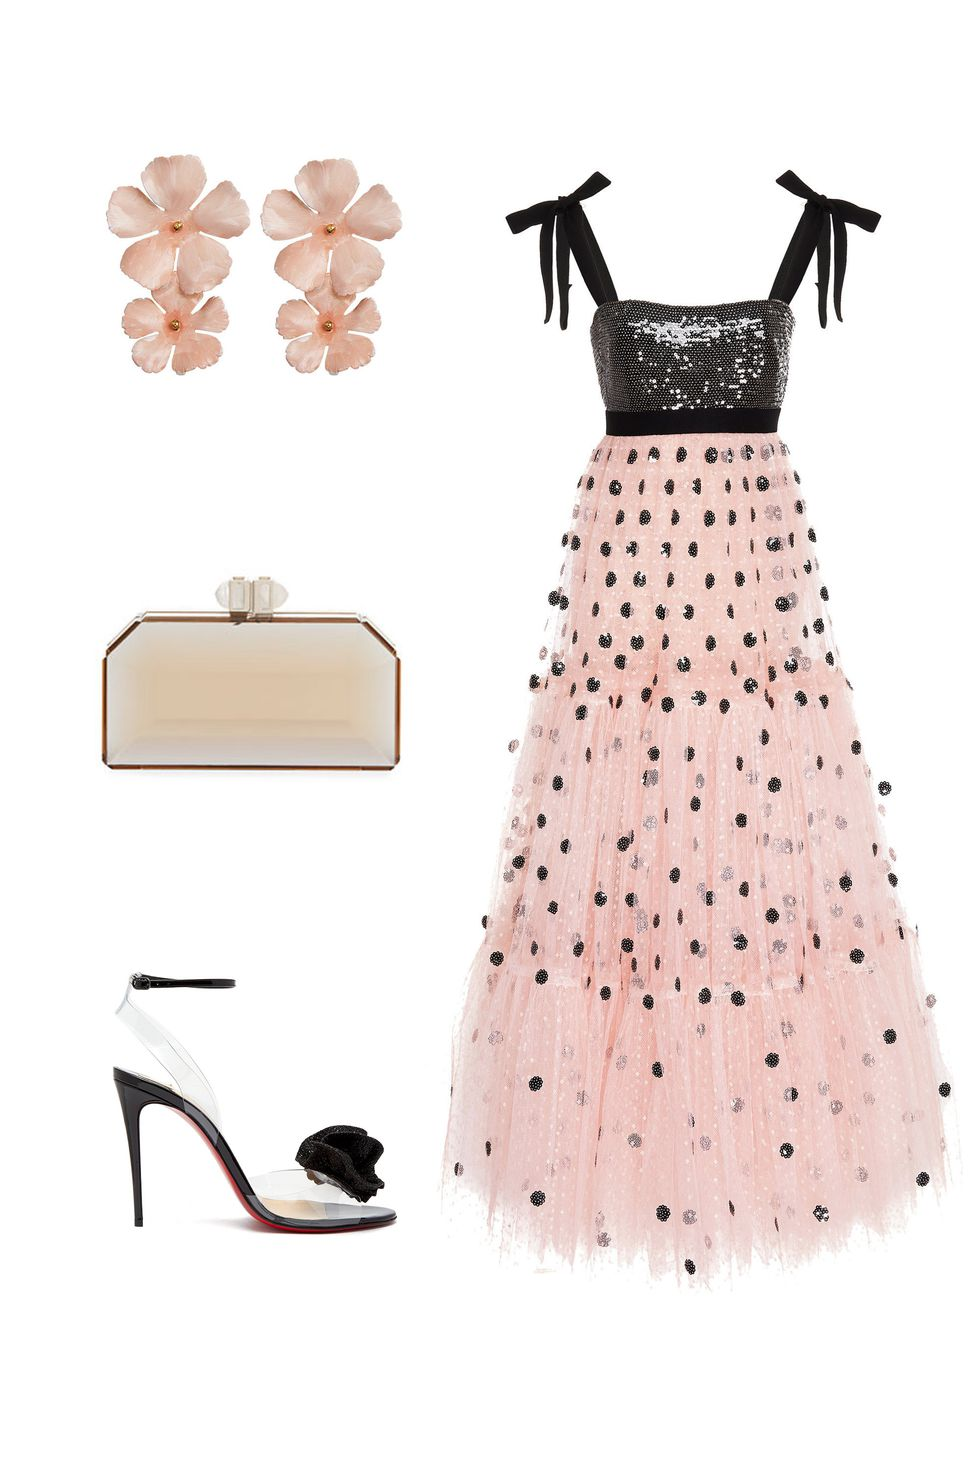 what-to-wear-for-a-fall-wedding-guest-outfit-autumn-fairytale-pink-light-dress-maxi-gown-earrings-black-shoe-sandalh-dinner.jpg